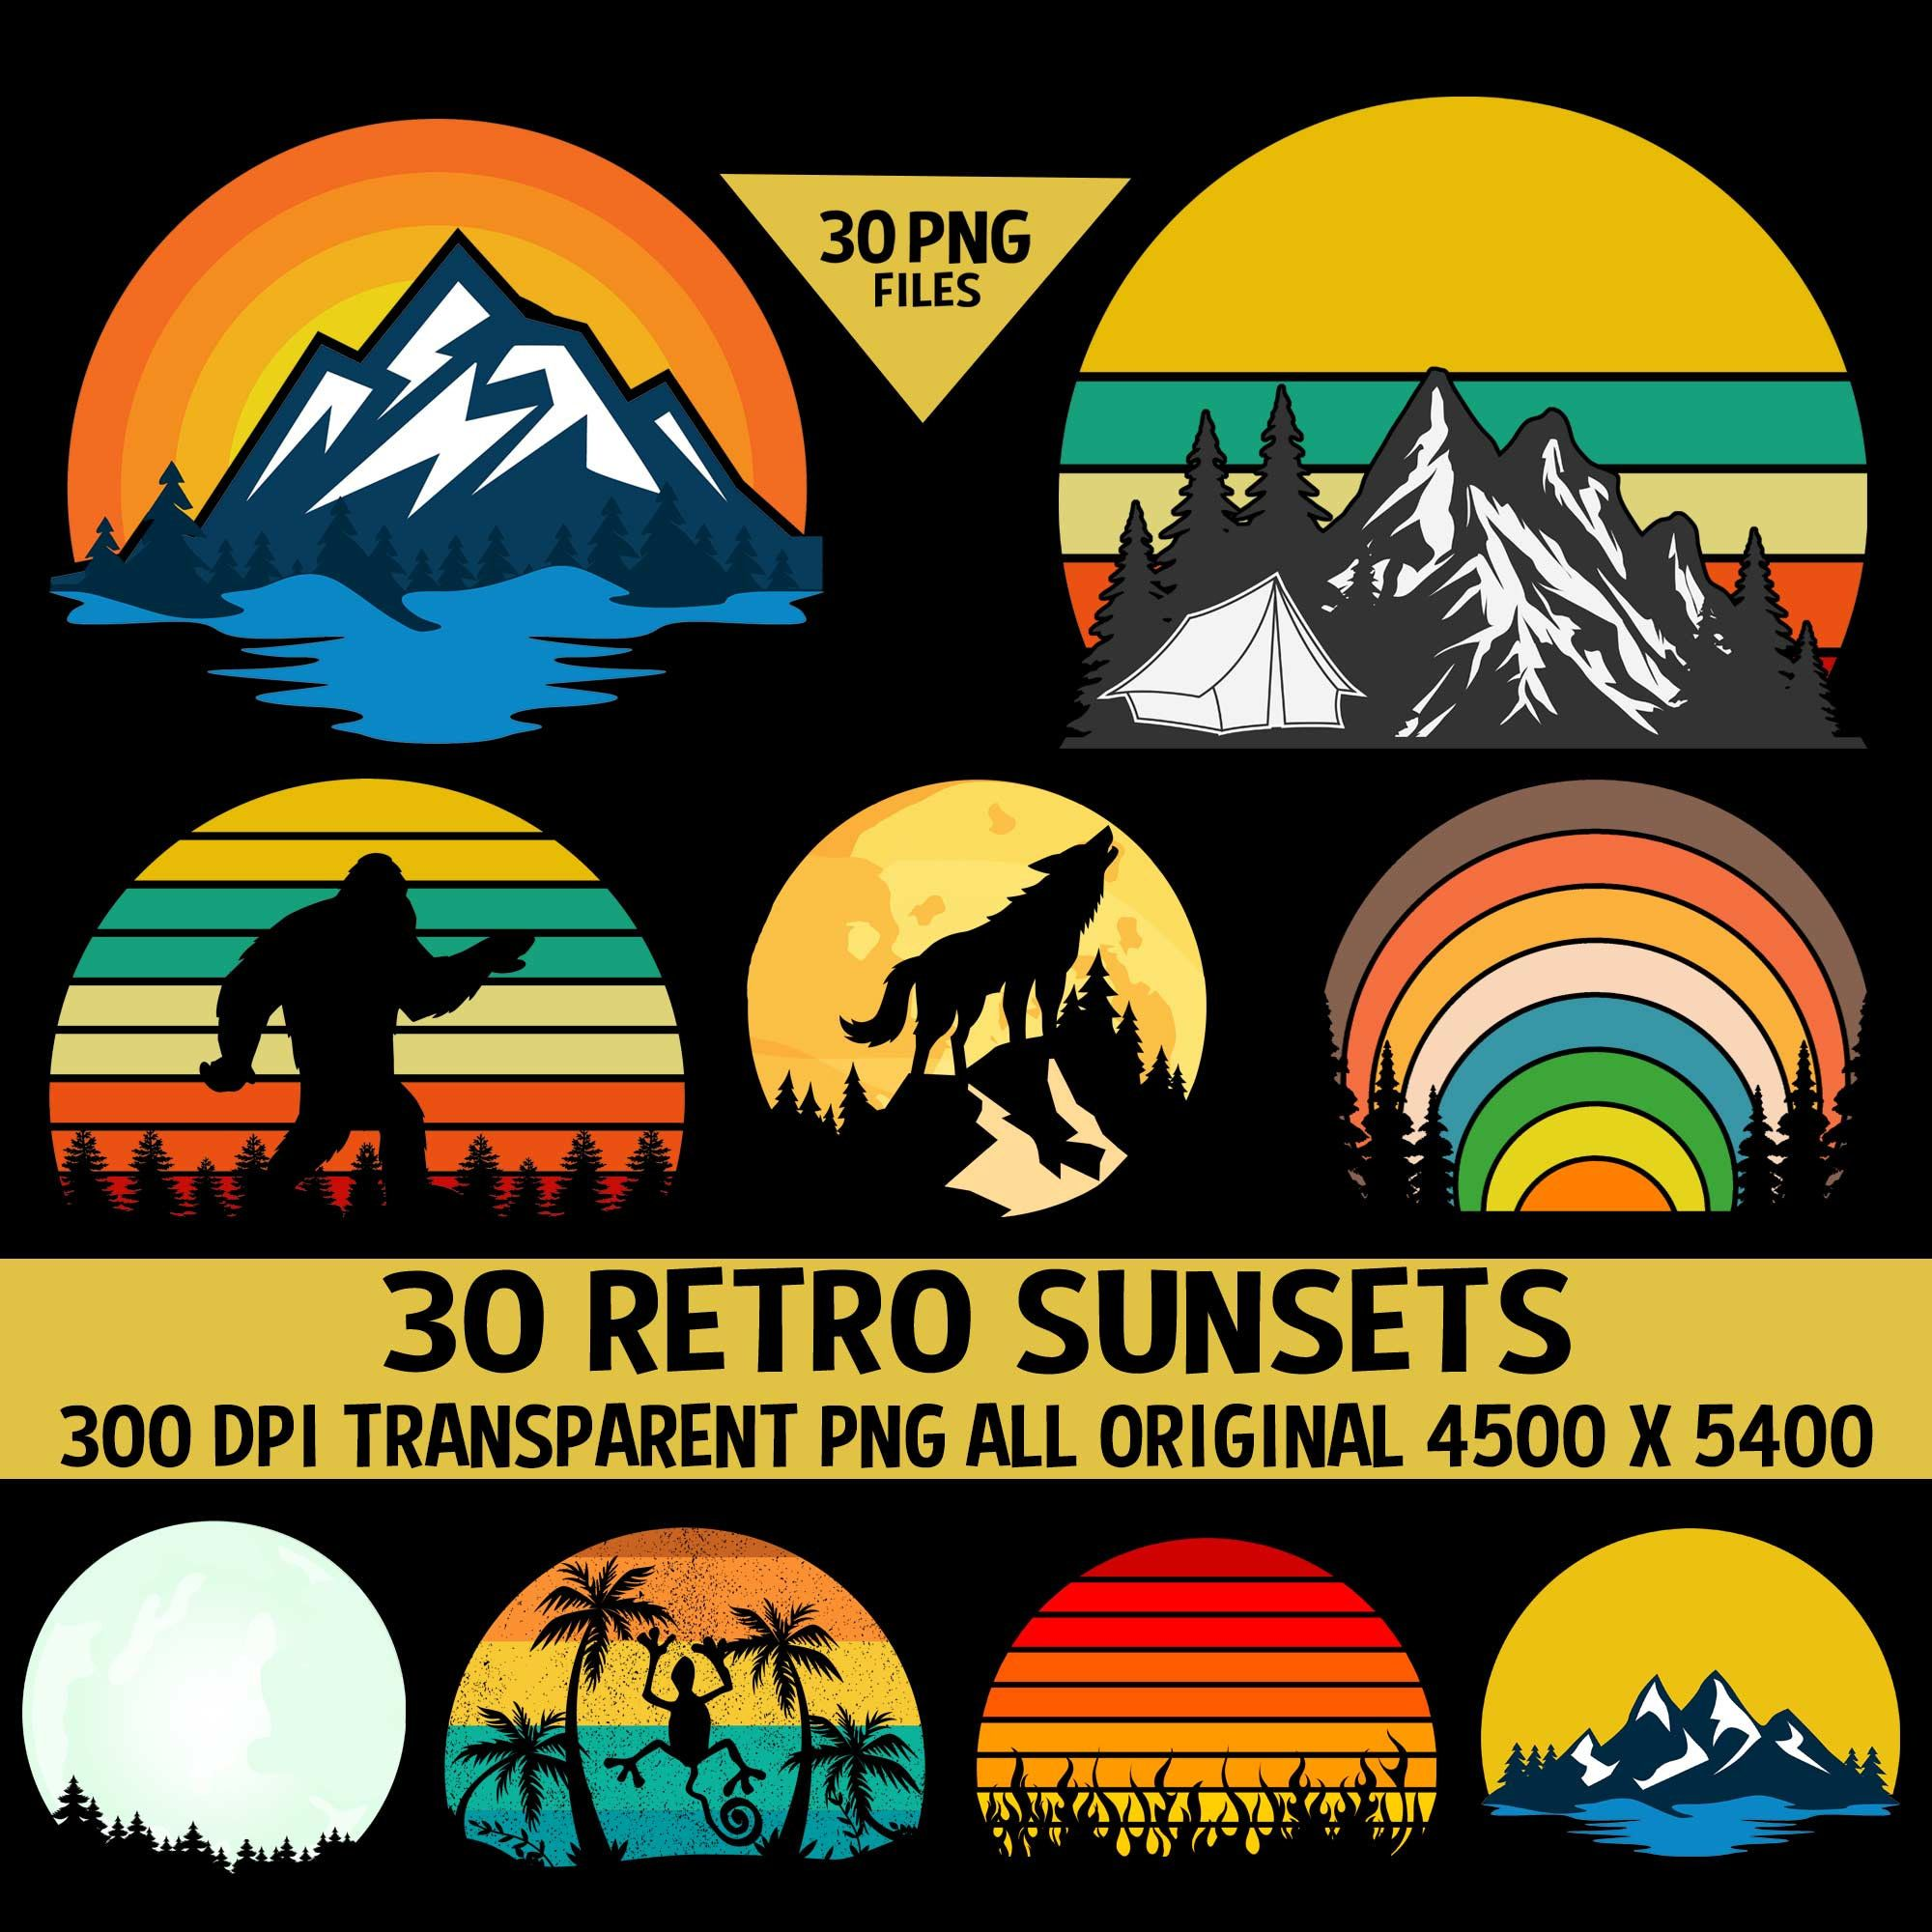 Retro Vintage Sunsets Pack 3 30 Sunset Clipart Sunrise Moons Etsy Wolf Howling At Moon Retro Retro Vintage